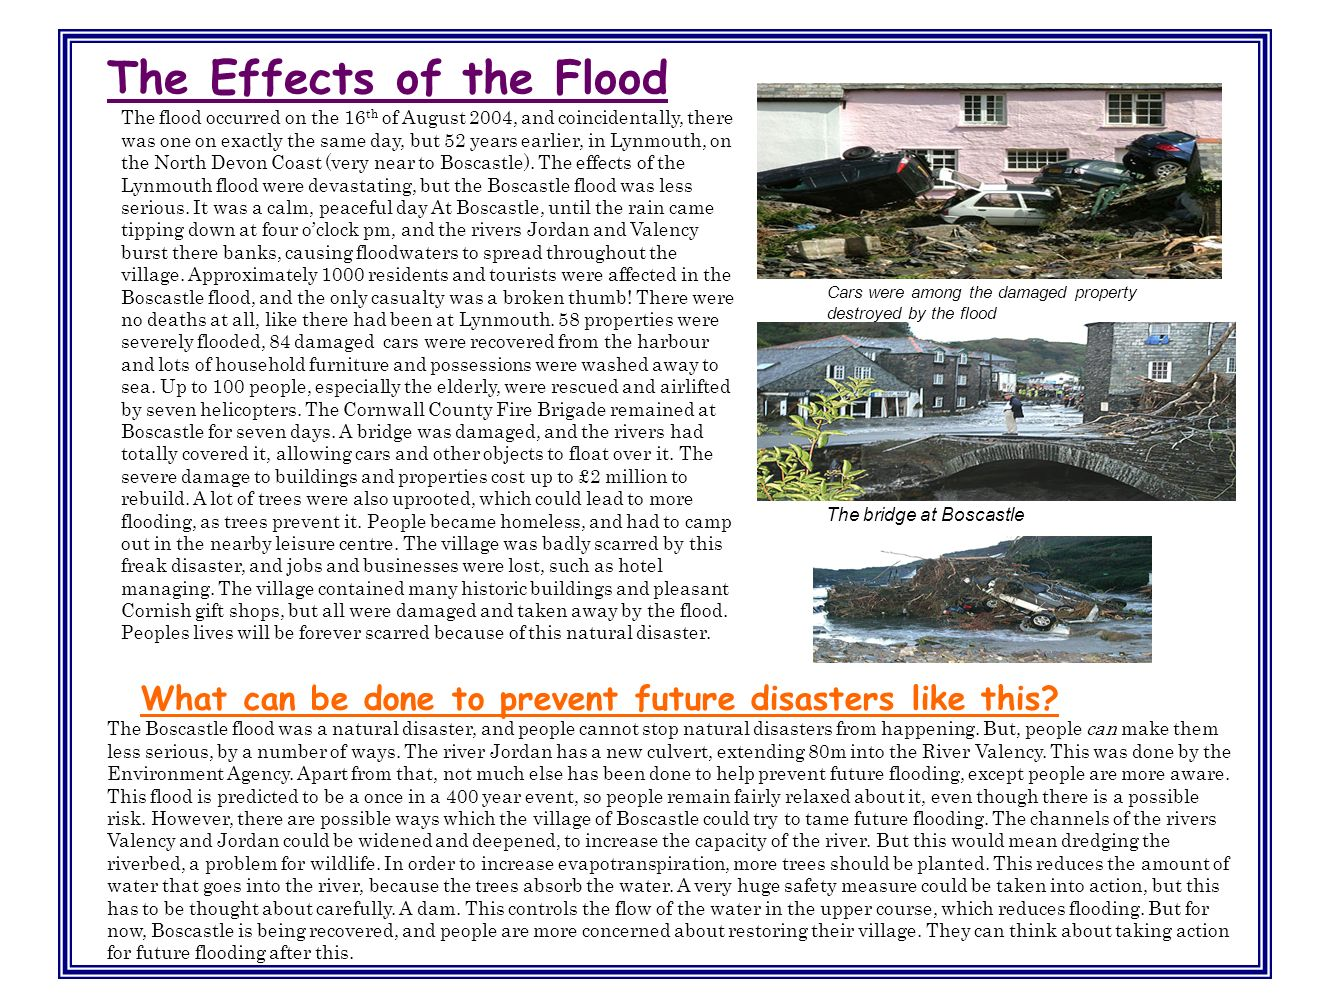 The Effects of the Flood The flood occurred on the 16 th of August 2004, and coincidentally, there was one on exactly the same day, but 52 years earlier, in Lynmouth, on the North Devon Coast (very near to Boscastle).